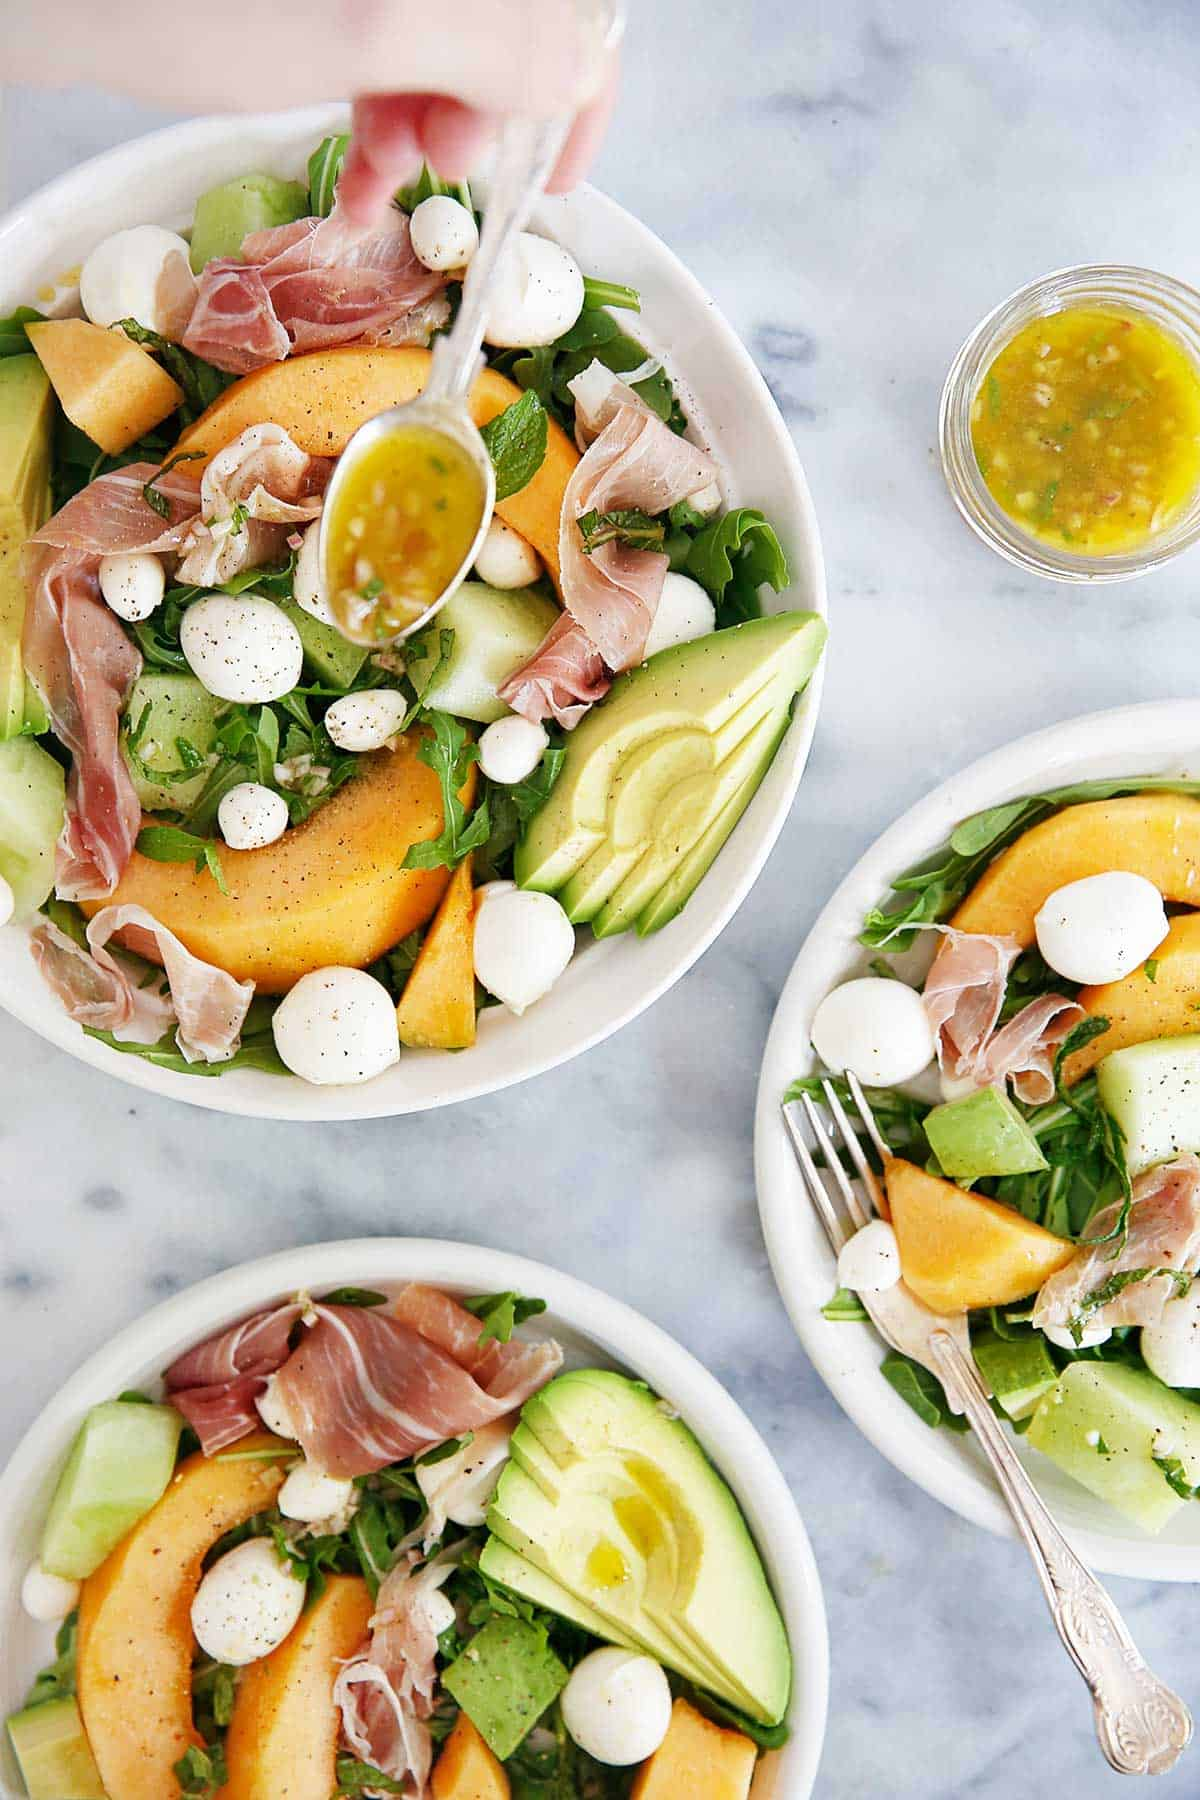 Melon and Prosciutto Salad | Lexi's Clean Kitchen